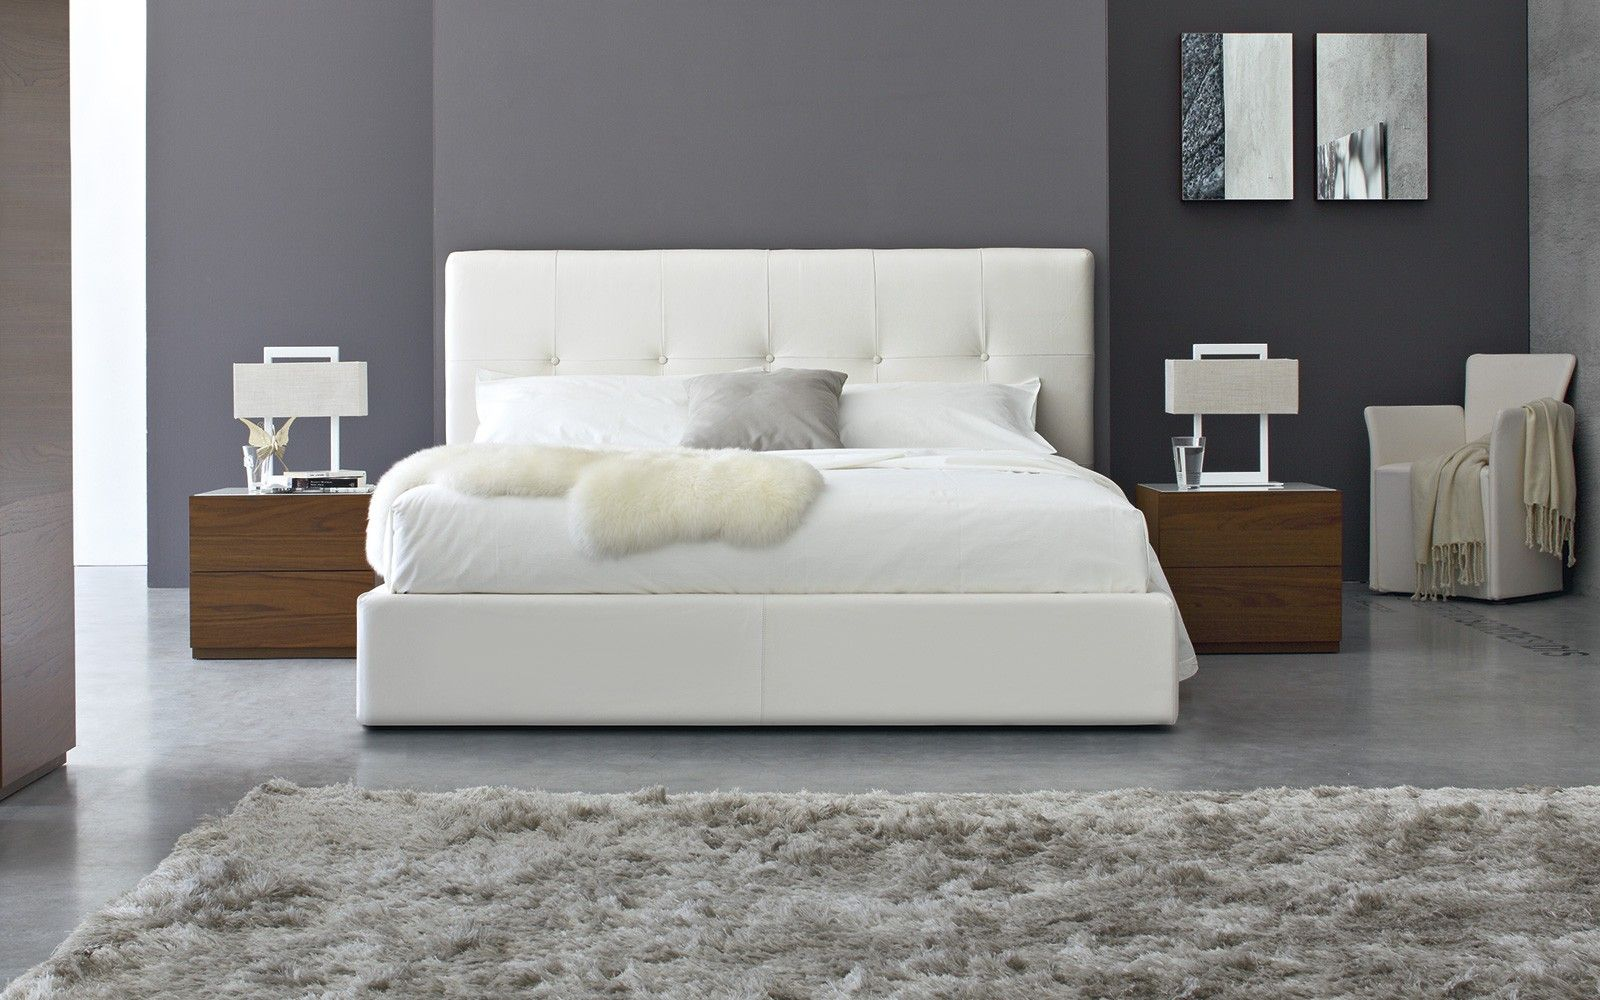 diamond bed calligaris fully upholstered bed with a chromed base  - diamond bed calligaris fully upholstered bed with a chromed baseavailable in matt optic white lacquer and white faux leather sizesinclude kin…